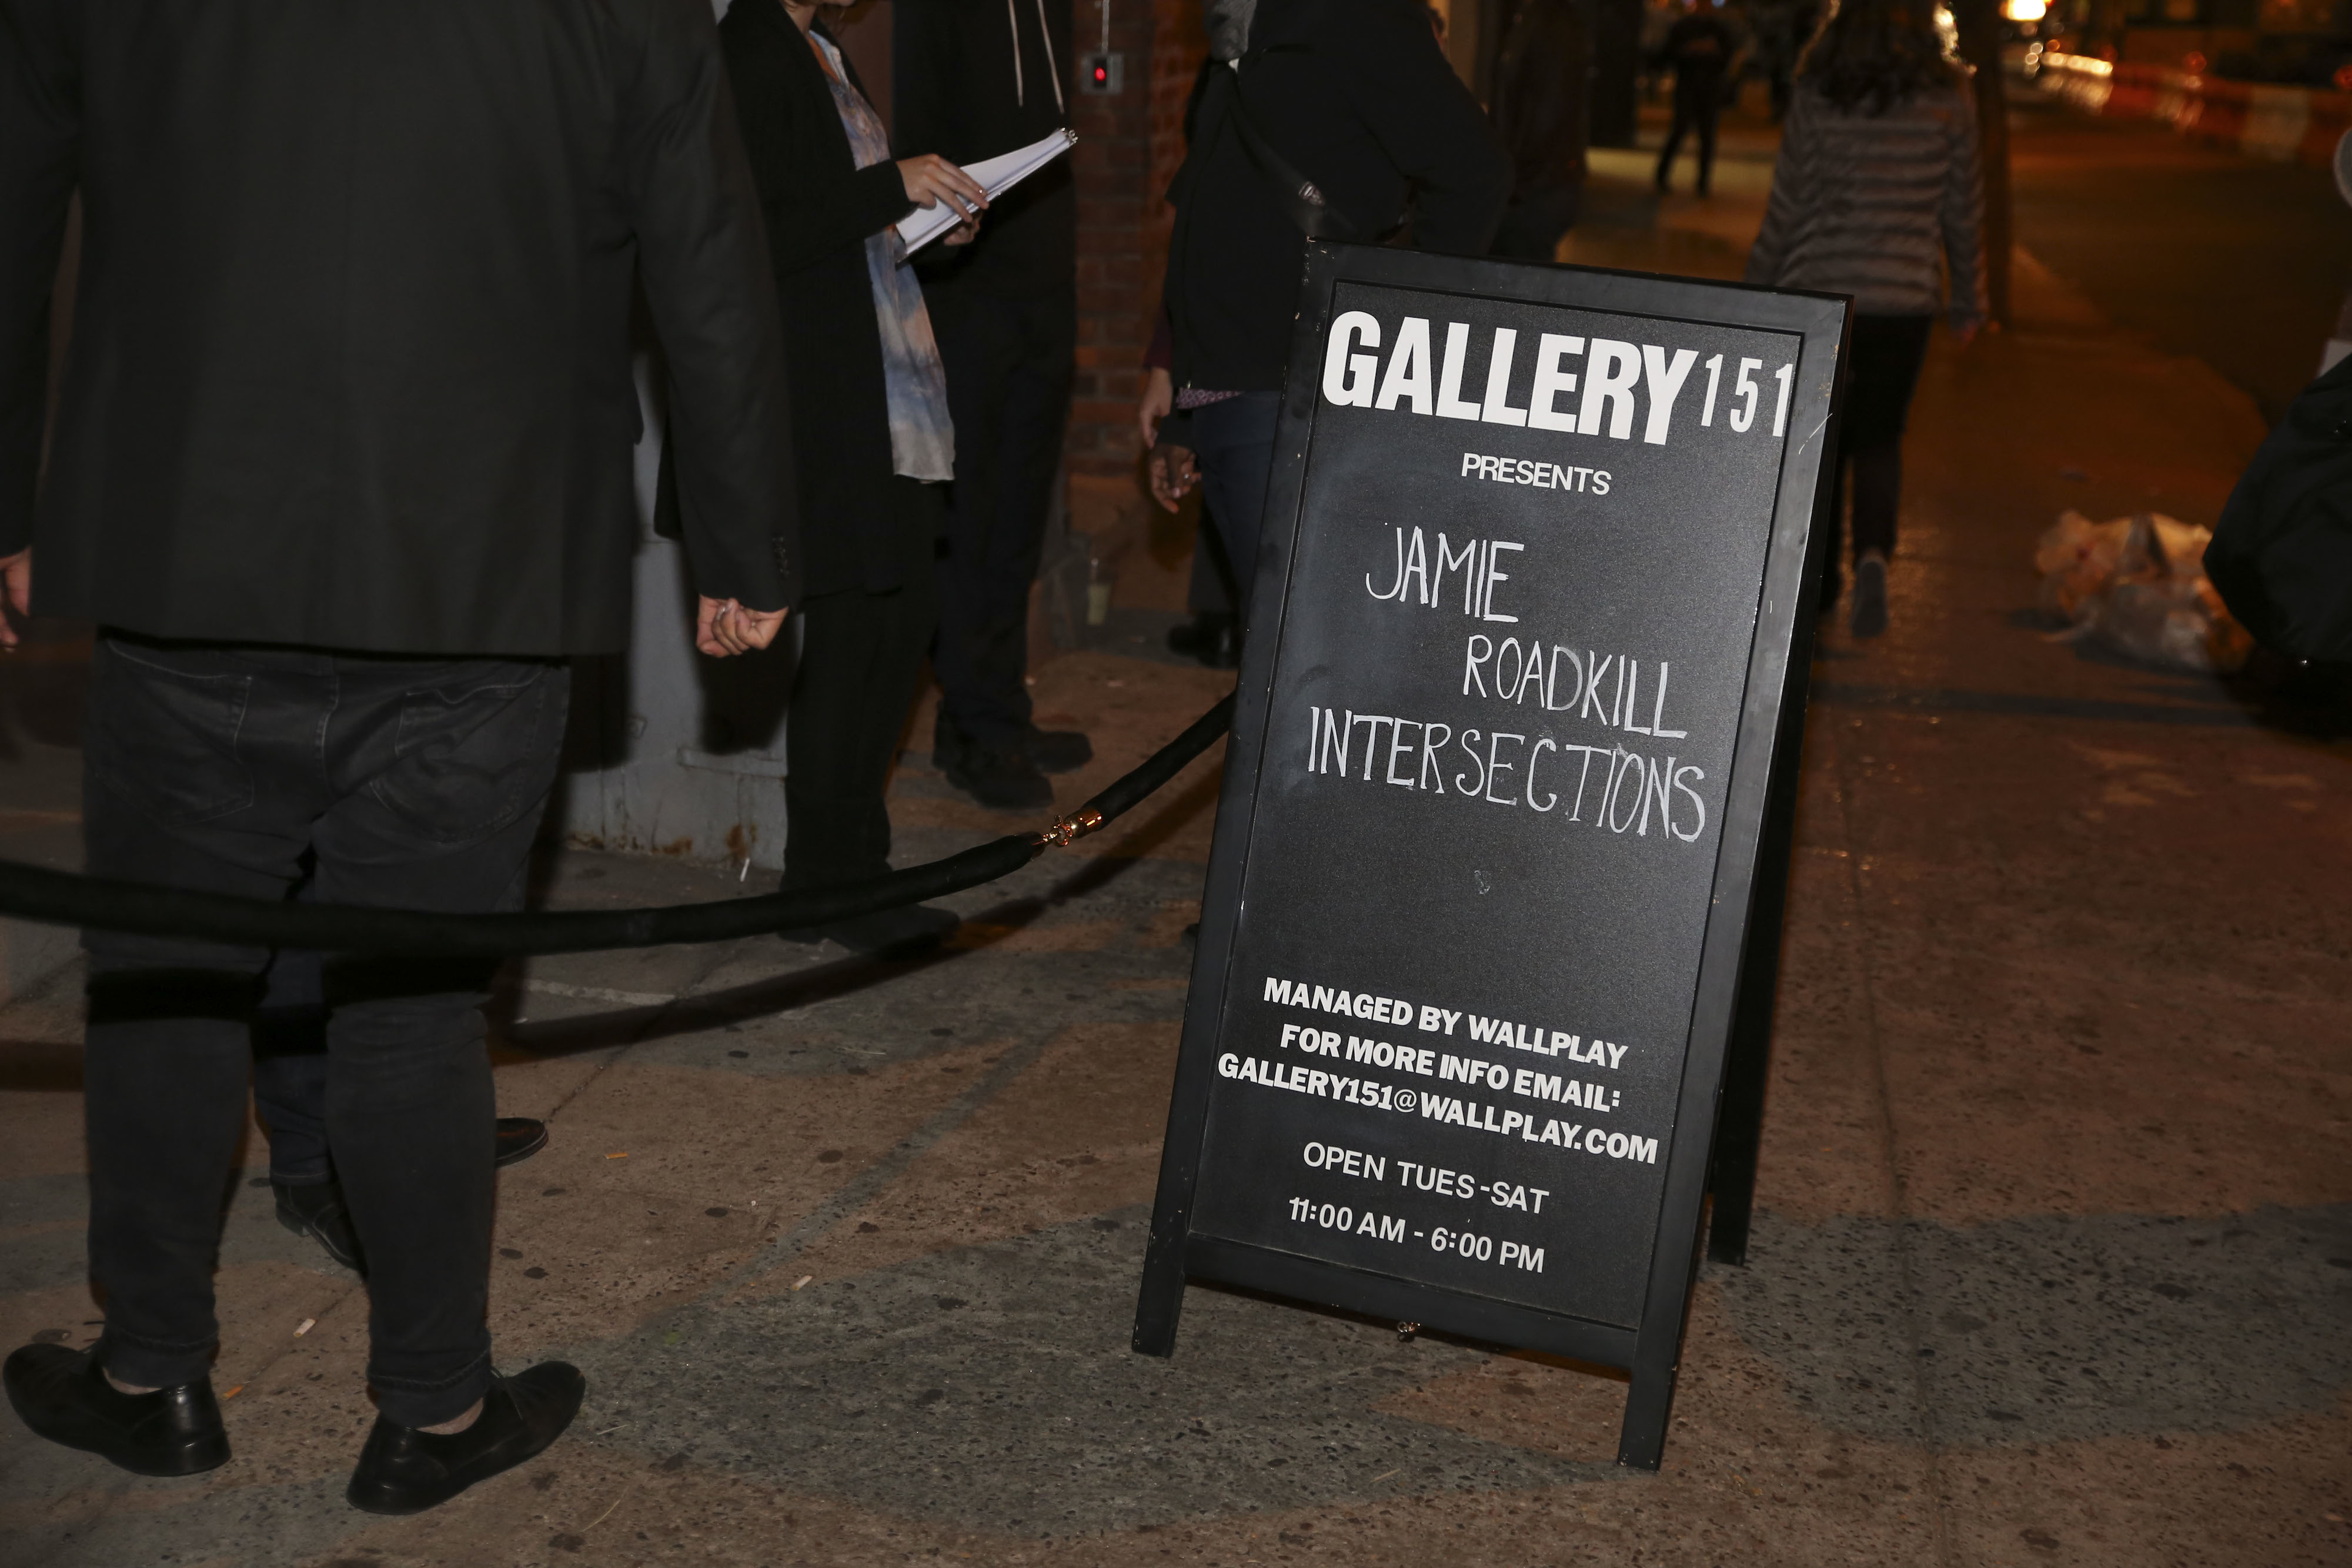 GALLERY 151 PRESENTS JAMIE ROADKILL: INTERSECTIONS